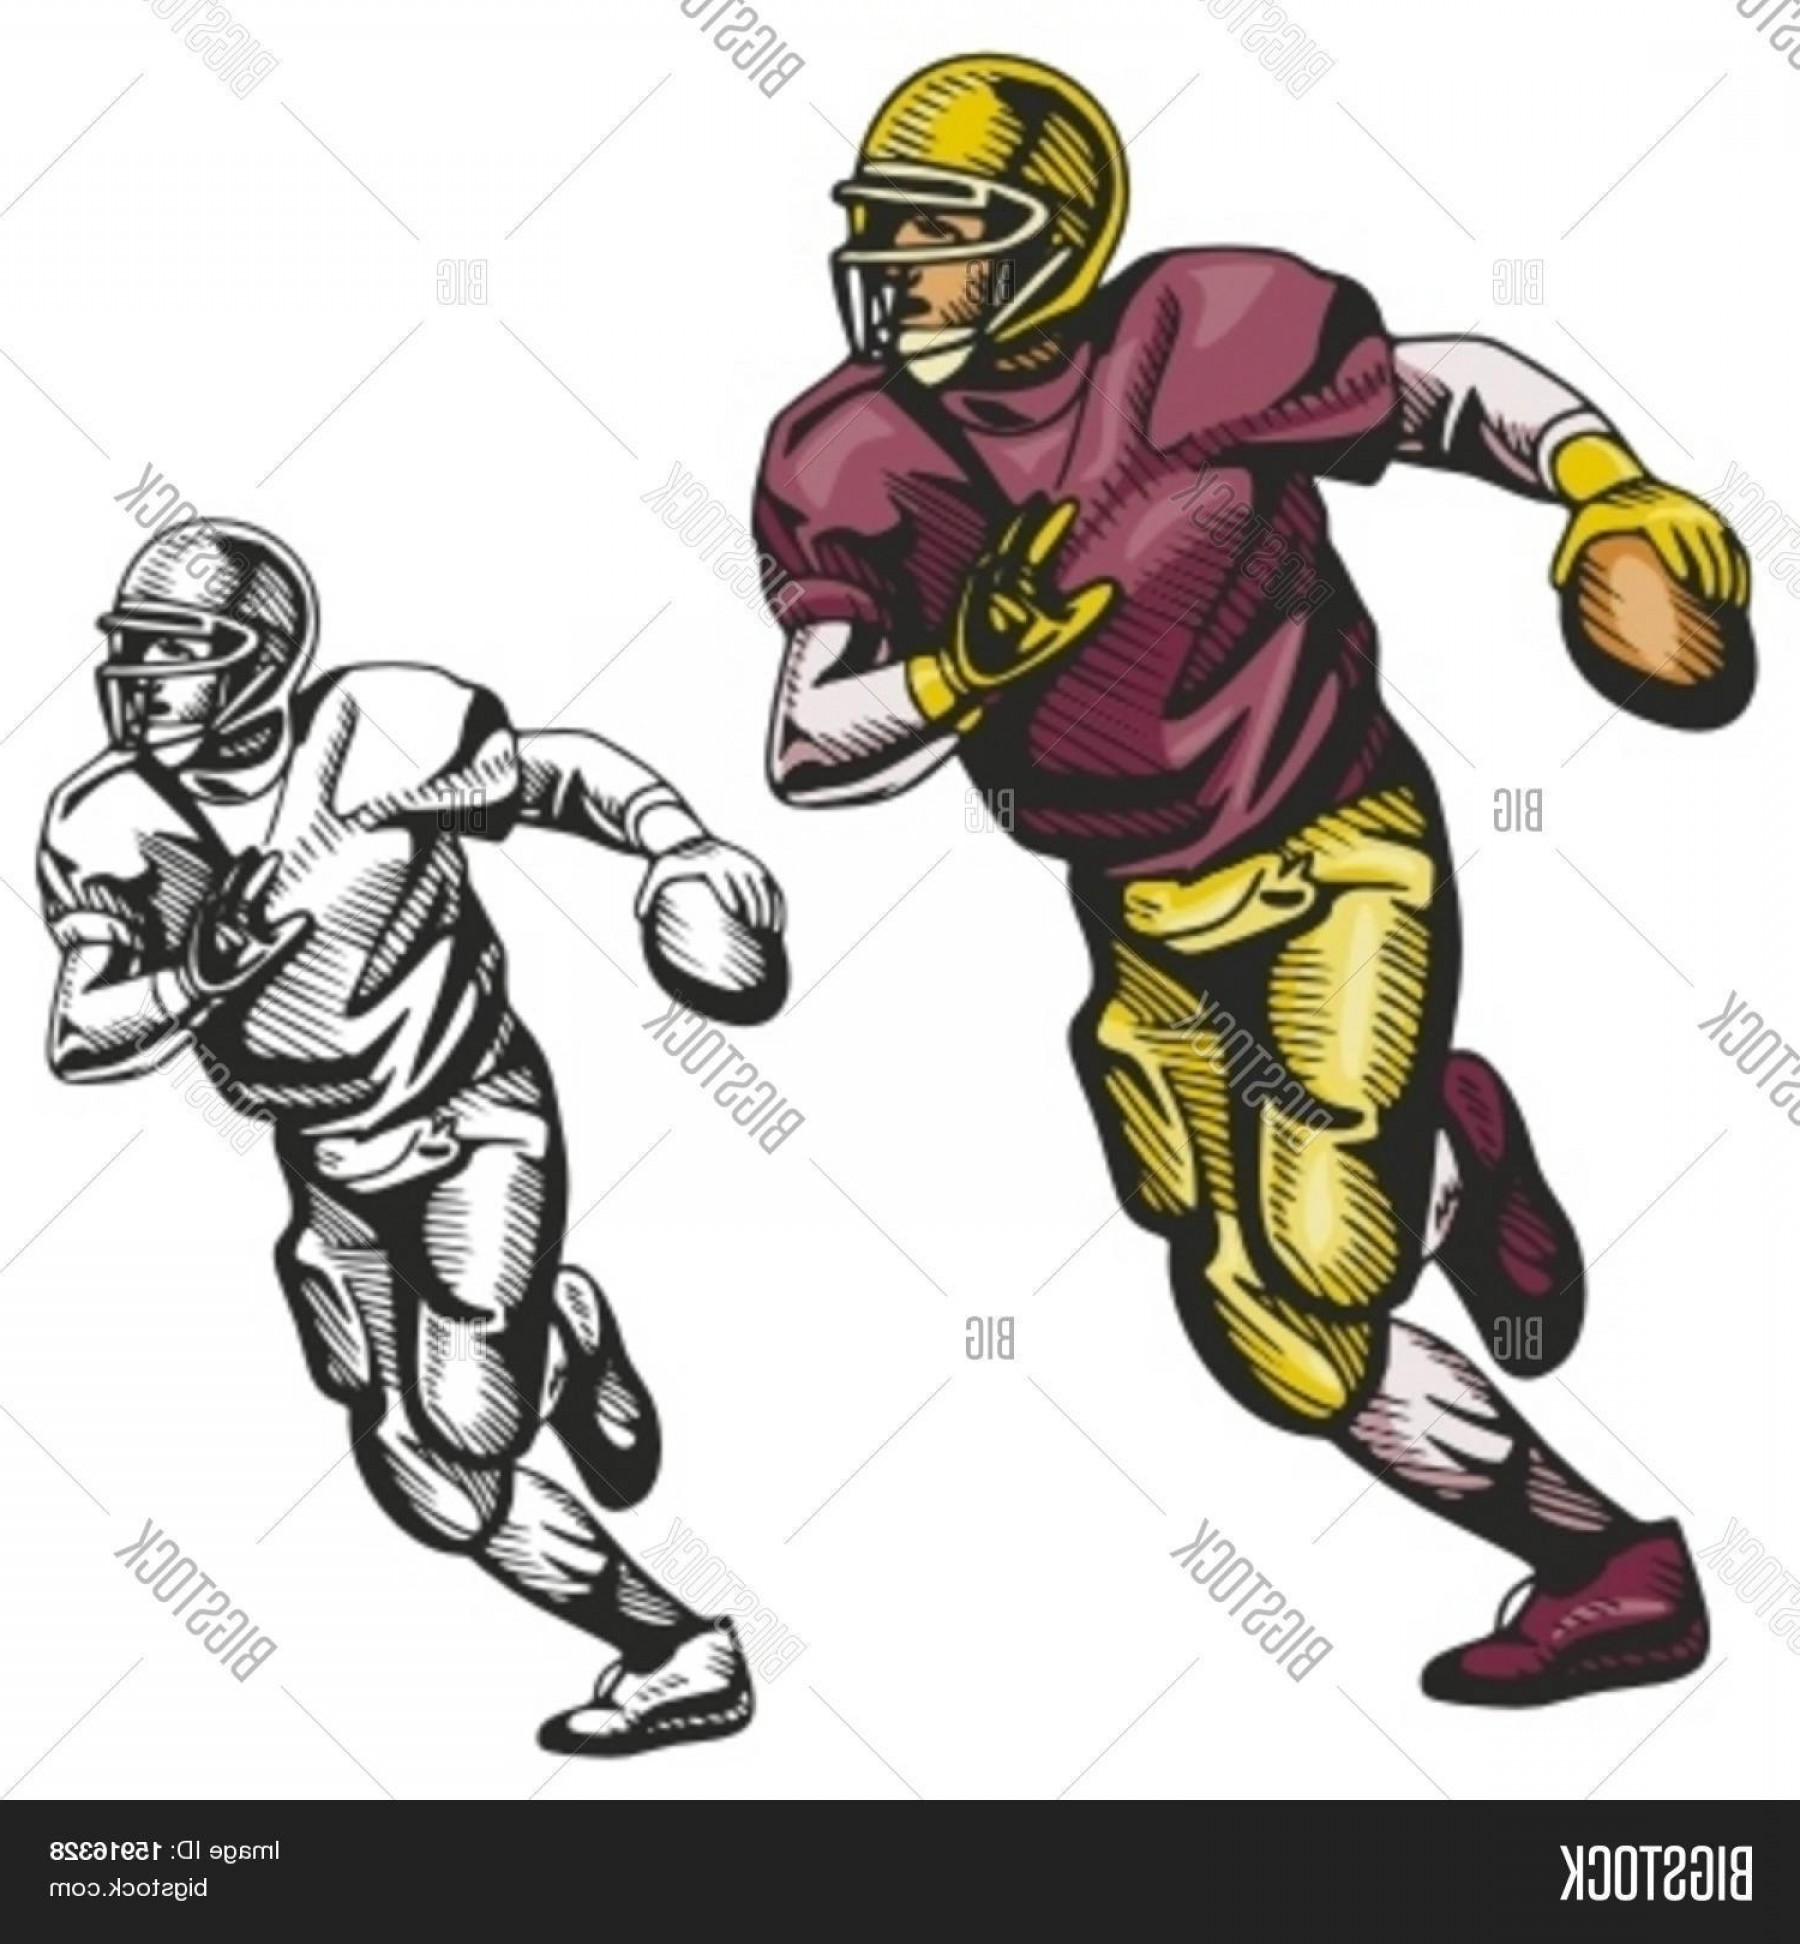 High Res Vector American Football: Stock Vector American Football Player Vector Illustration